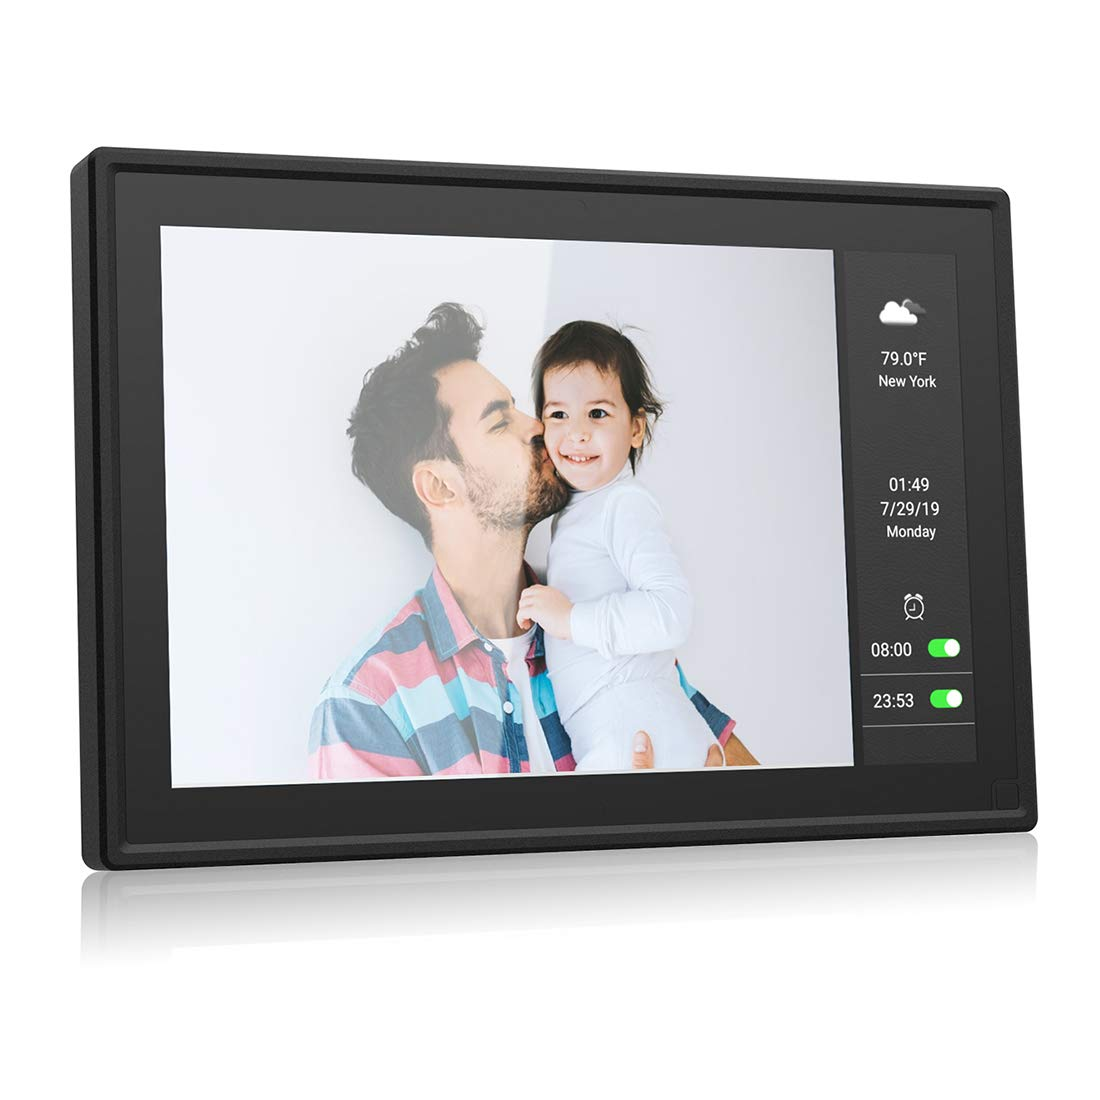 BSIMB Wifi Cloud Digital Photo Frame Digital Picture Frame Dual Display 9 Inch+5.5 Inch IPS Touch Screen Motion Sensor Sent Photos from Anywhere Support iOS/Android.Facebook.Twitter.Email W09 Plus 16G by Bsimb